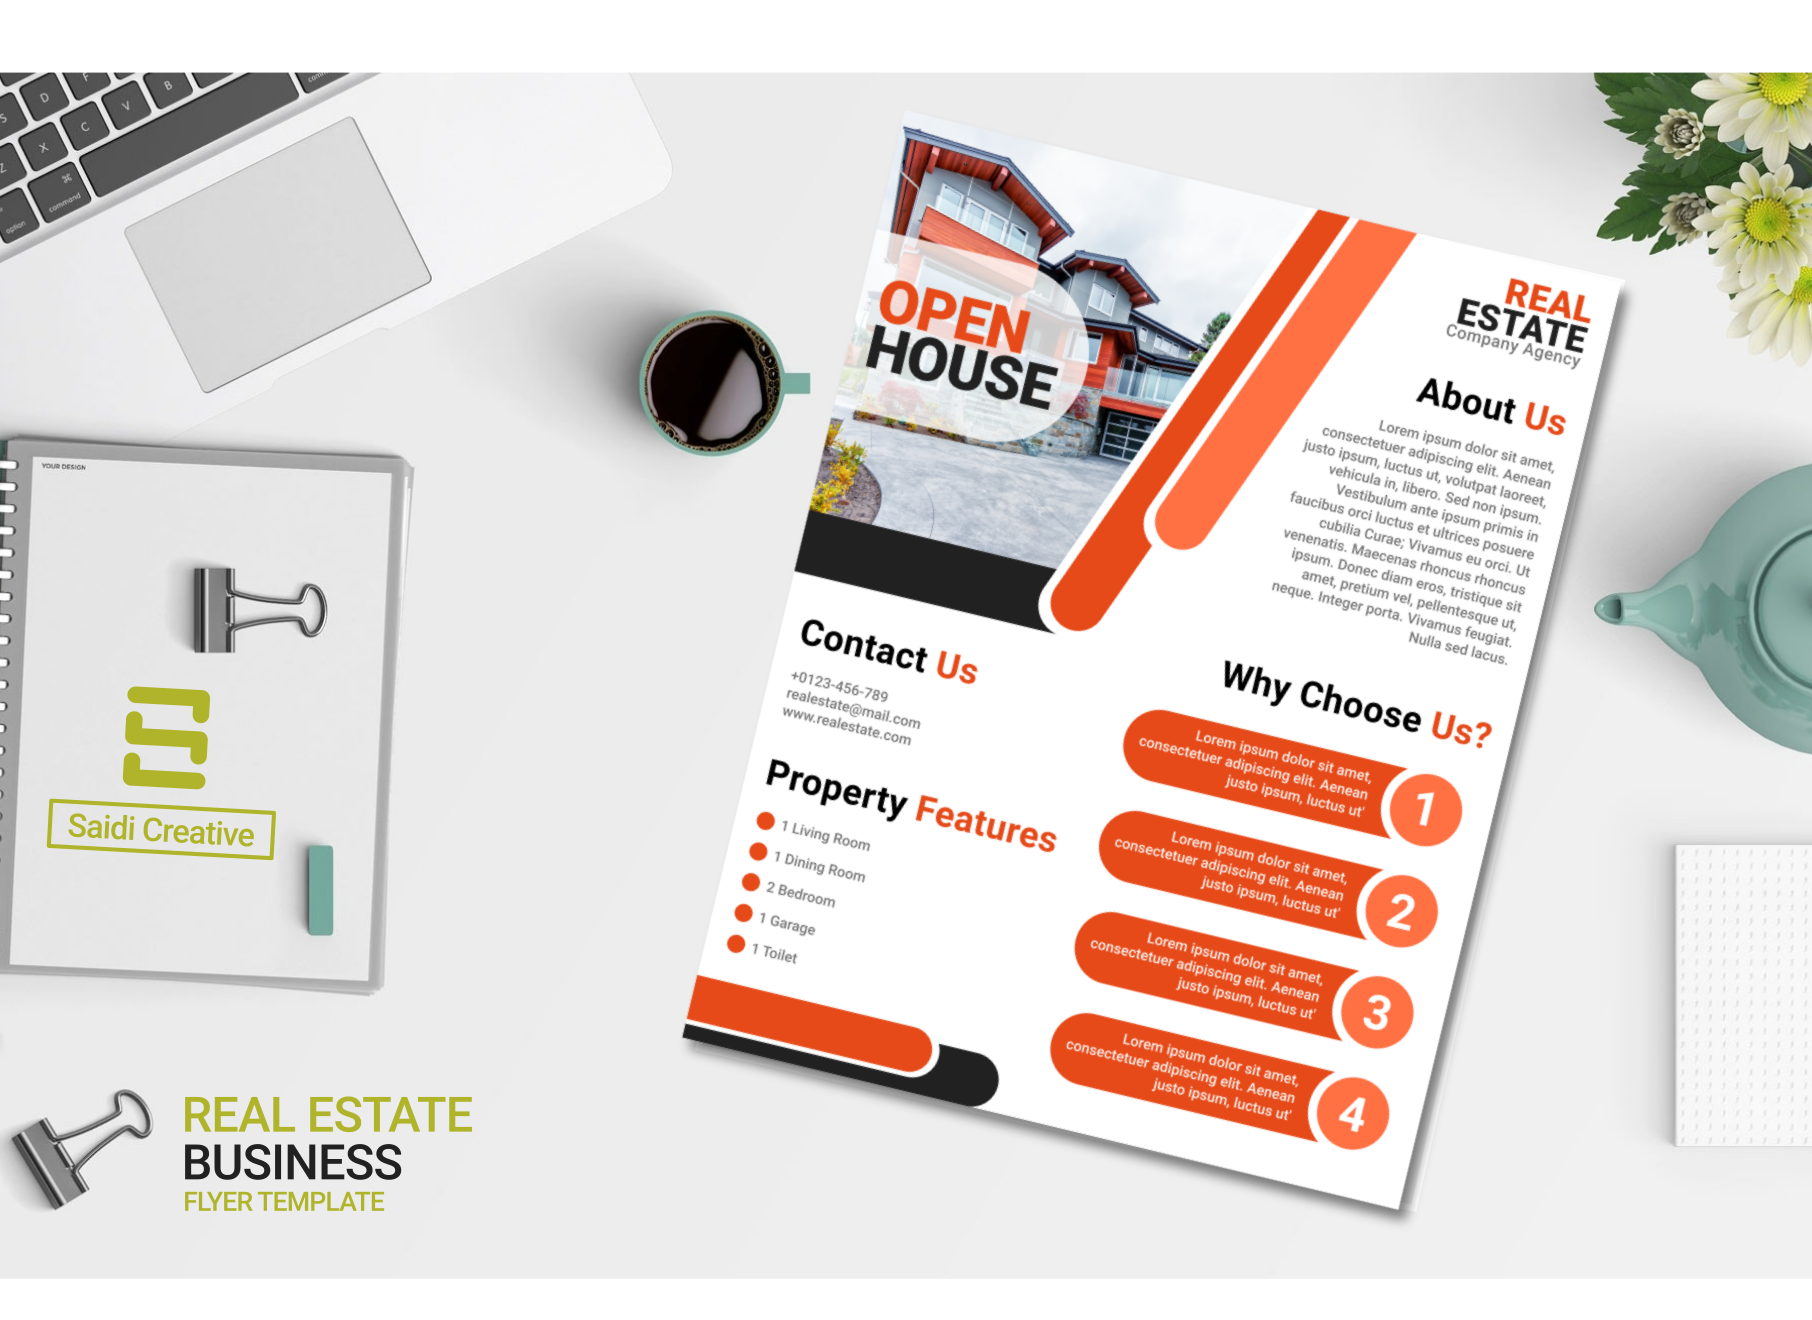 Real Estate Business Flyer Template Design With Orange Color